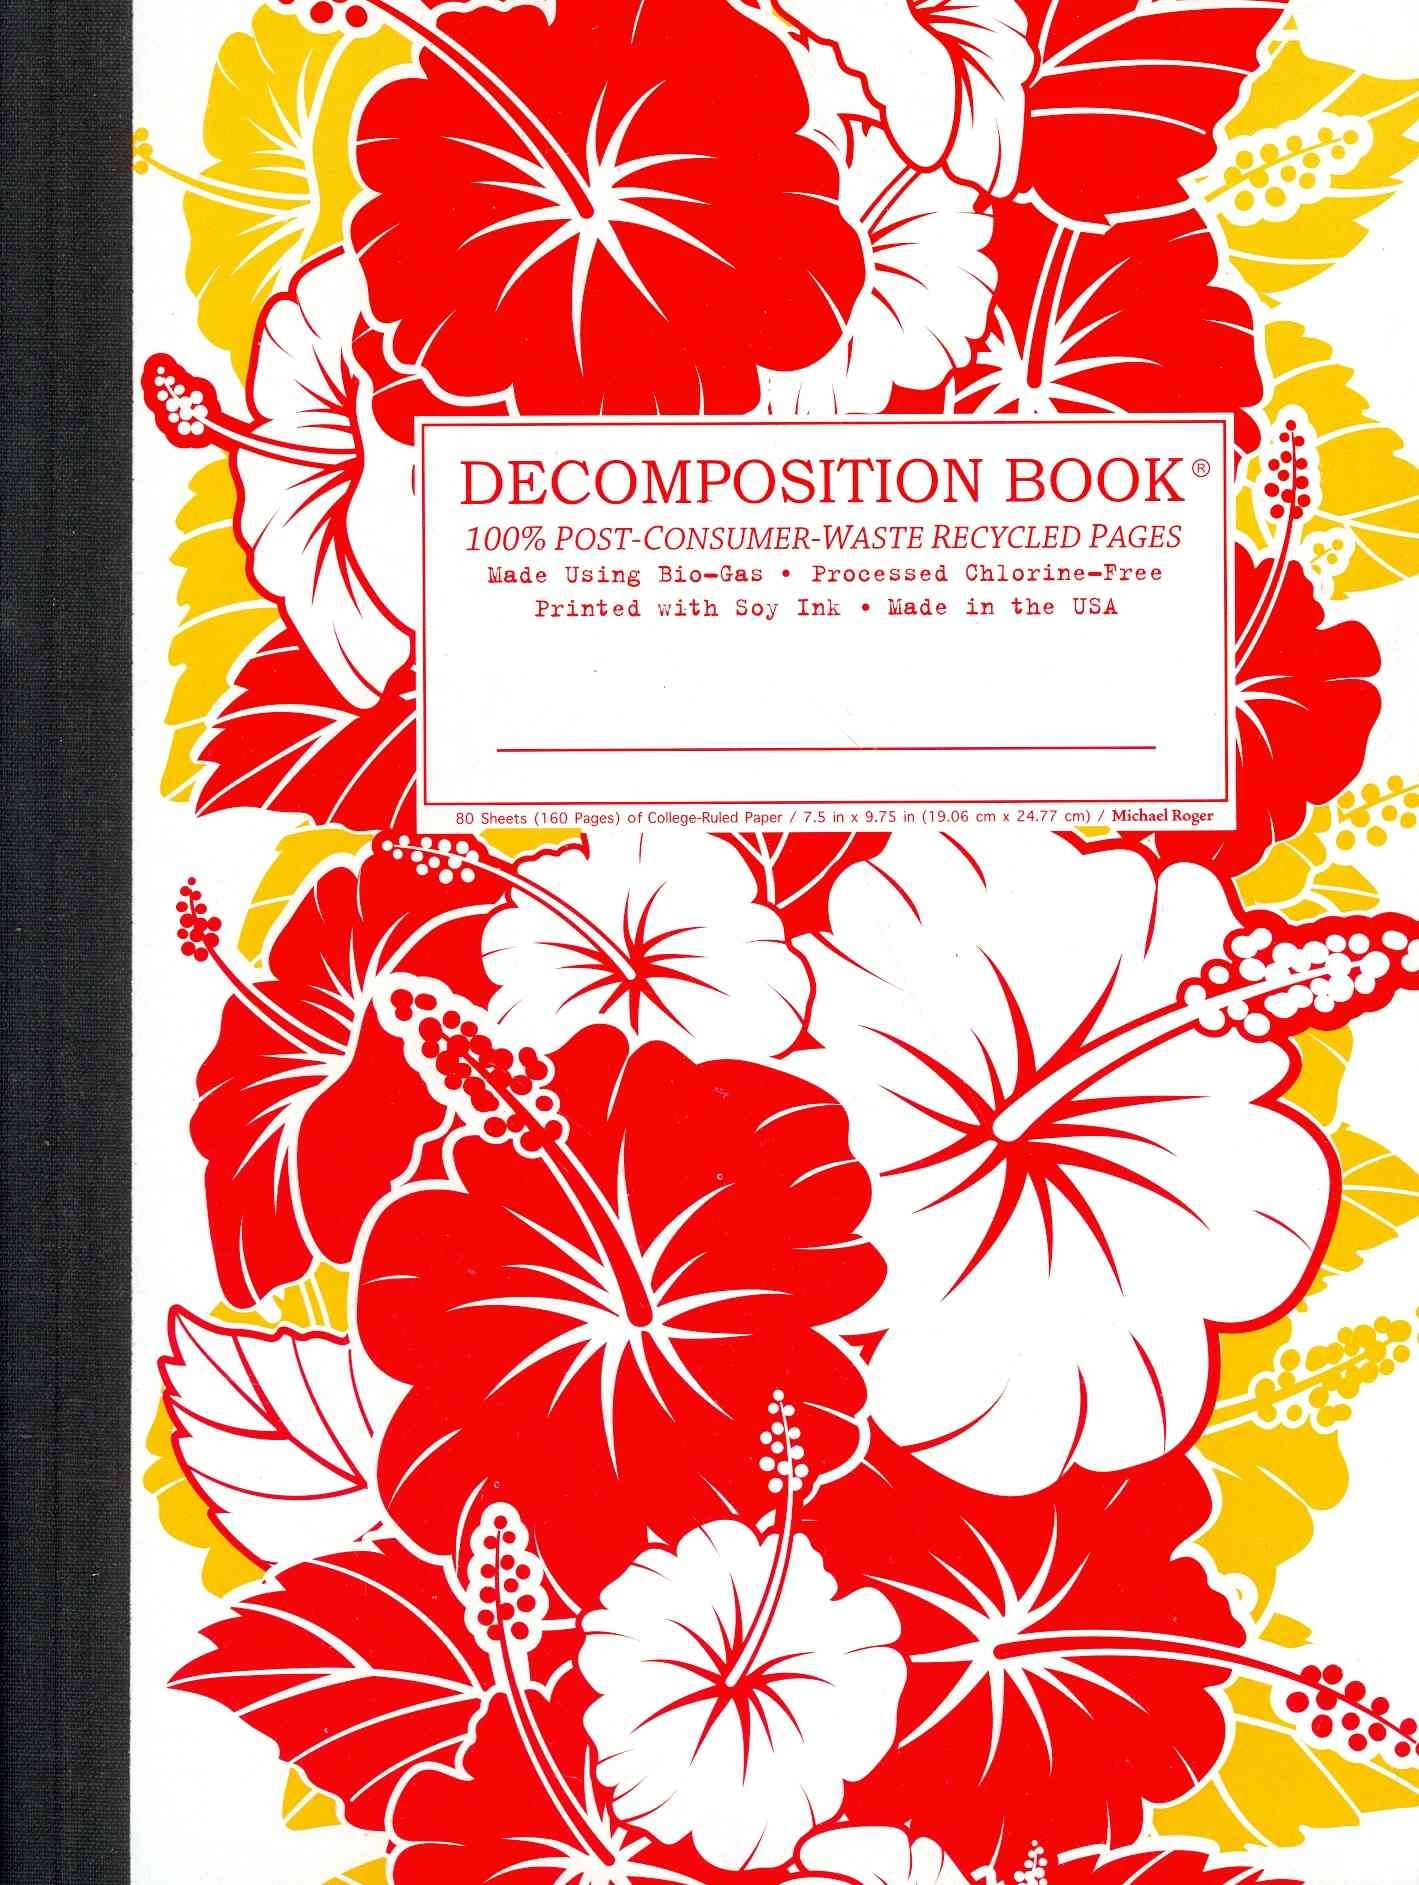 Hibiscus Decomposition Book College Ruled Composition Notebook With